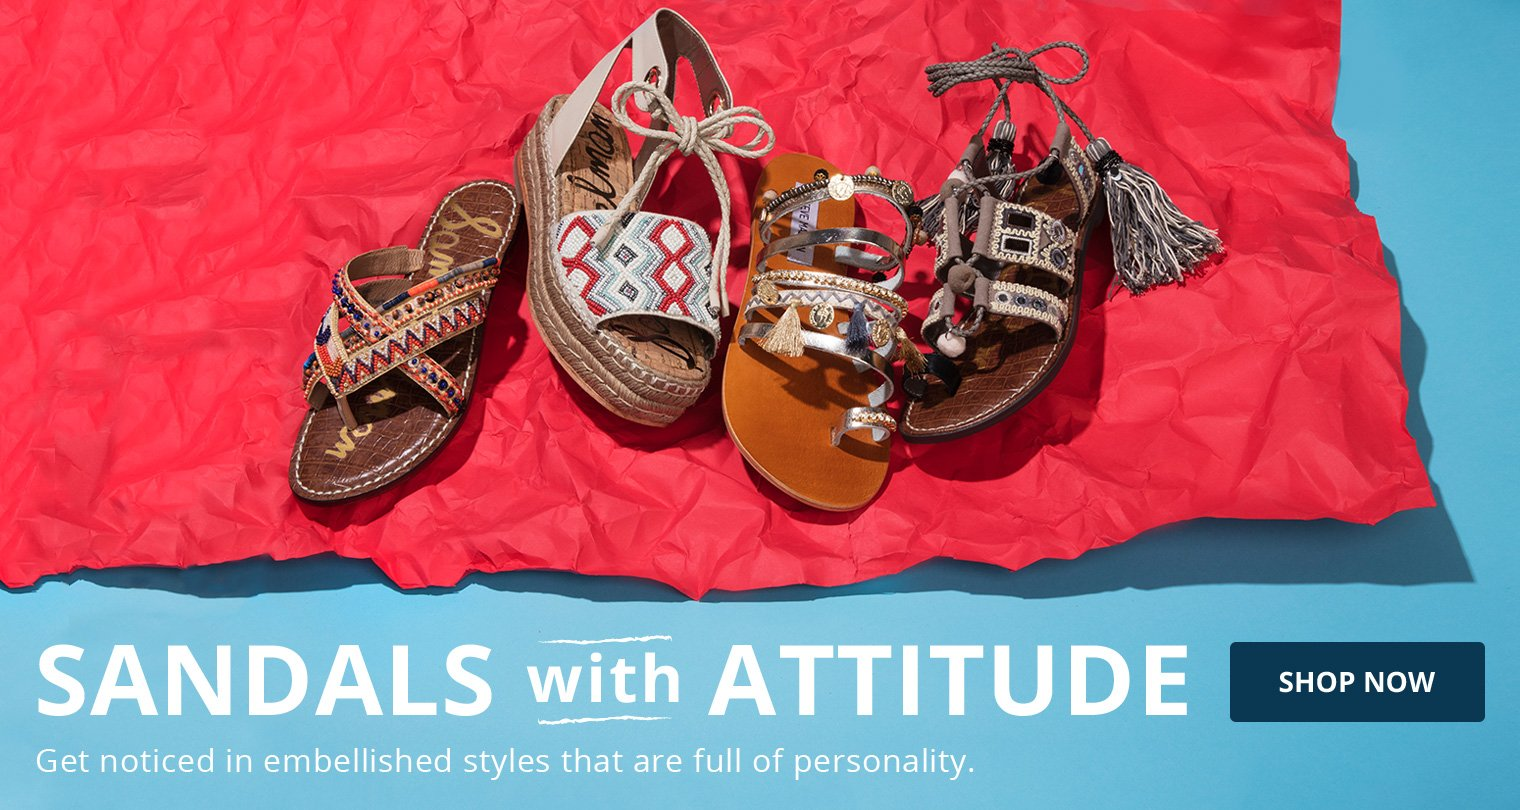 Sandals with Attitude. Shop Now, Get noticed in embellished styles that are full of personality.